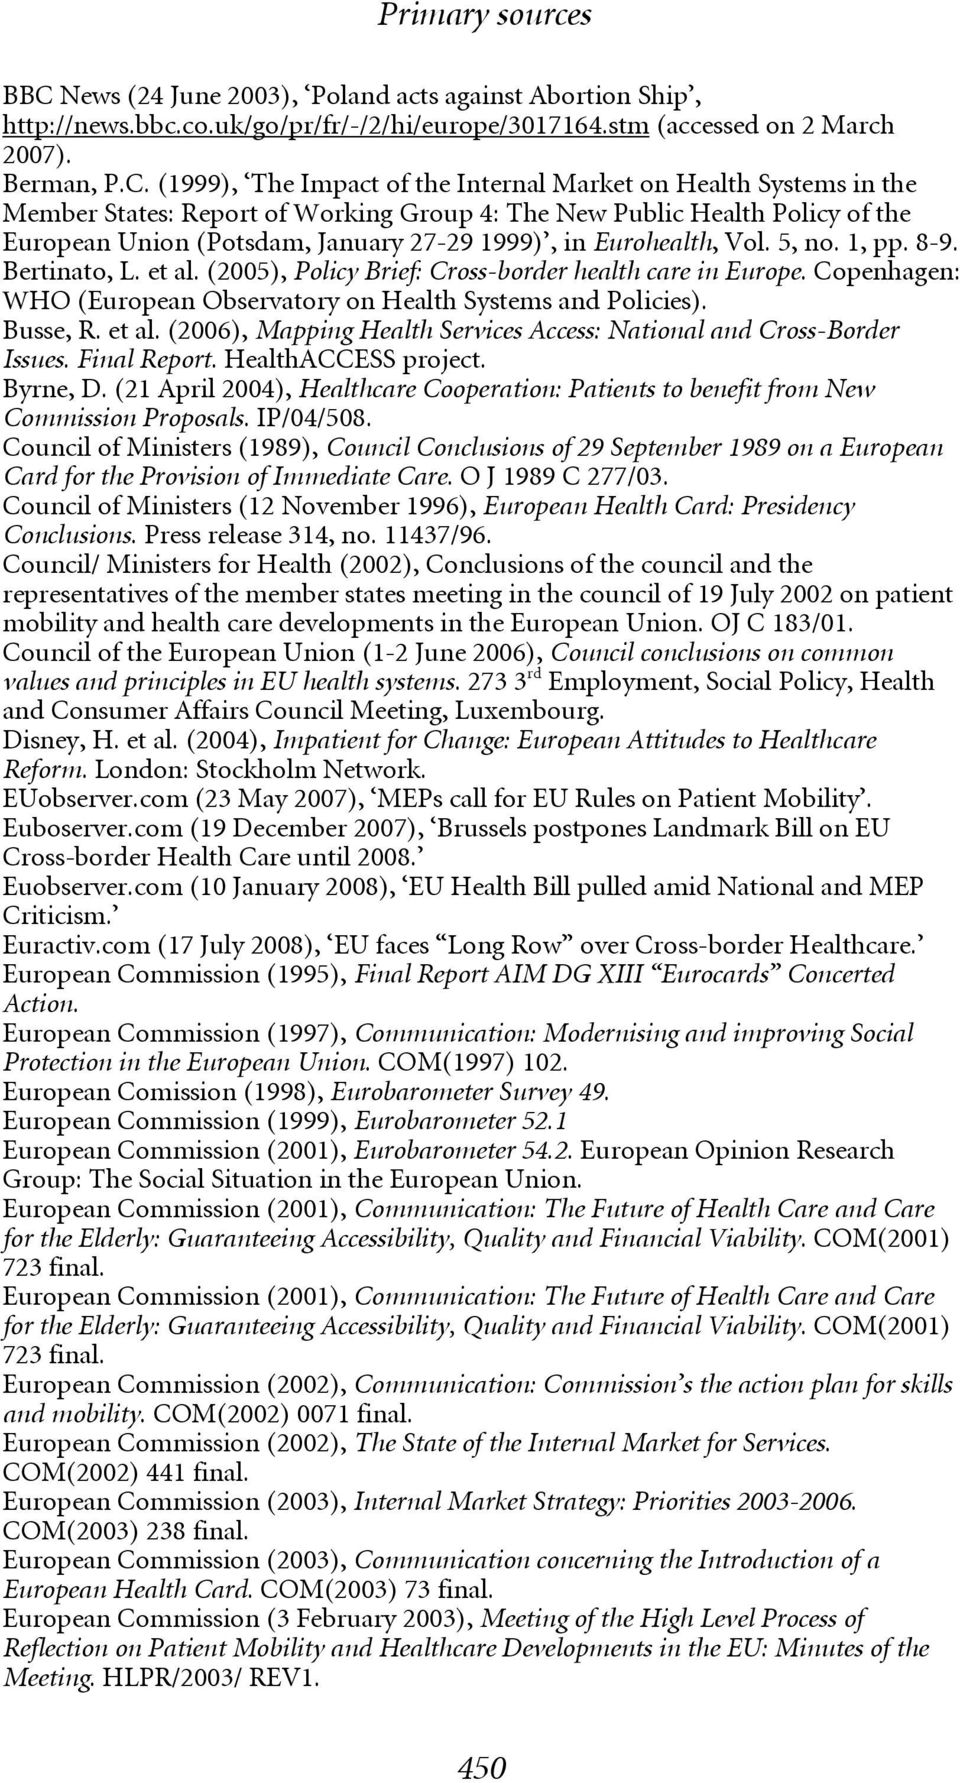 Bertinato, L. et al. (2005), Policy Brief: Cross-border health care in Europe. Copenhagen: WHO (European Observatory on Health Systems and Policies). Busse, R. et al. (2006), Mapping Health Services Access: National and Cross-Border Issues.